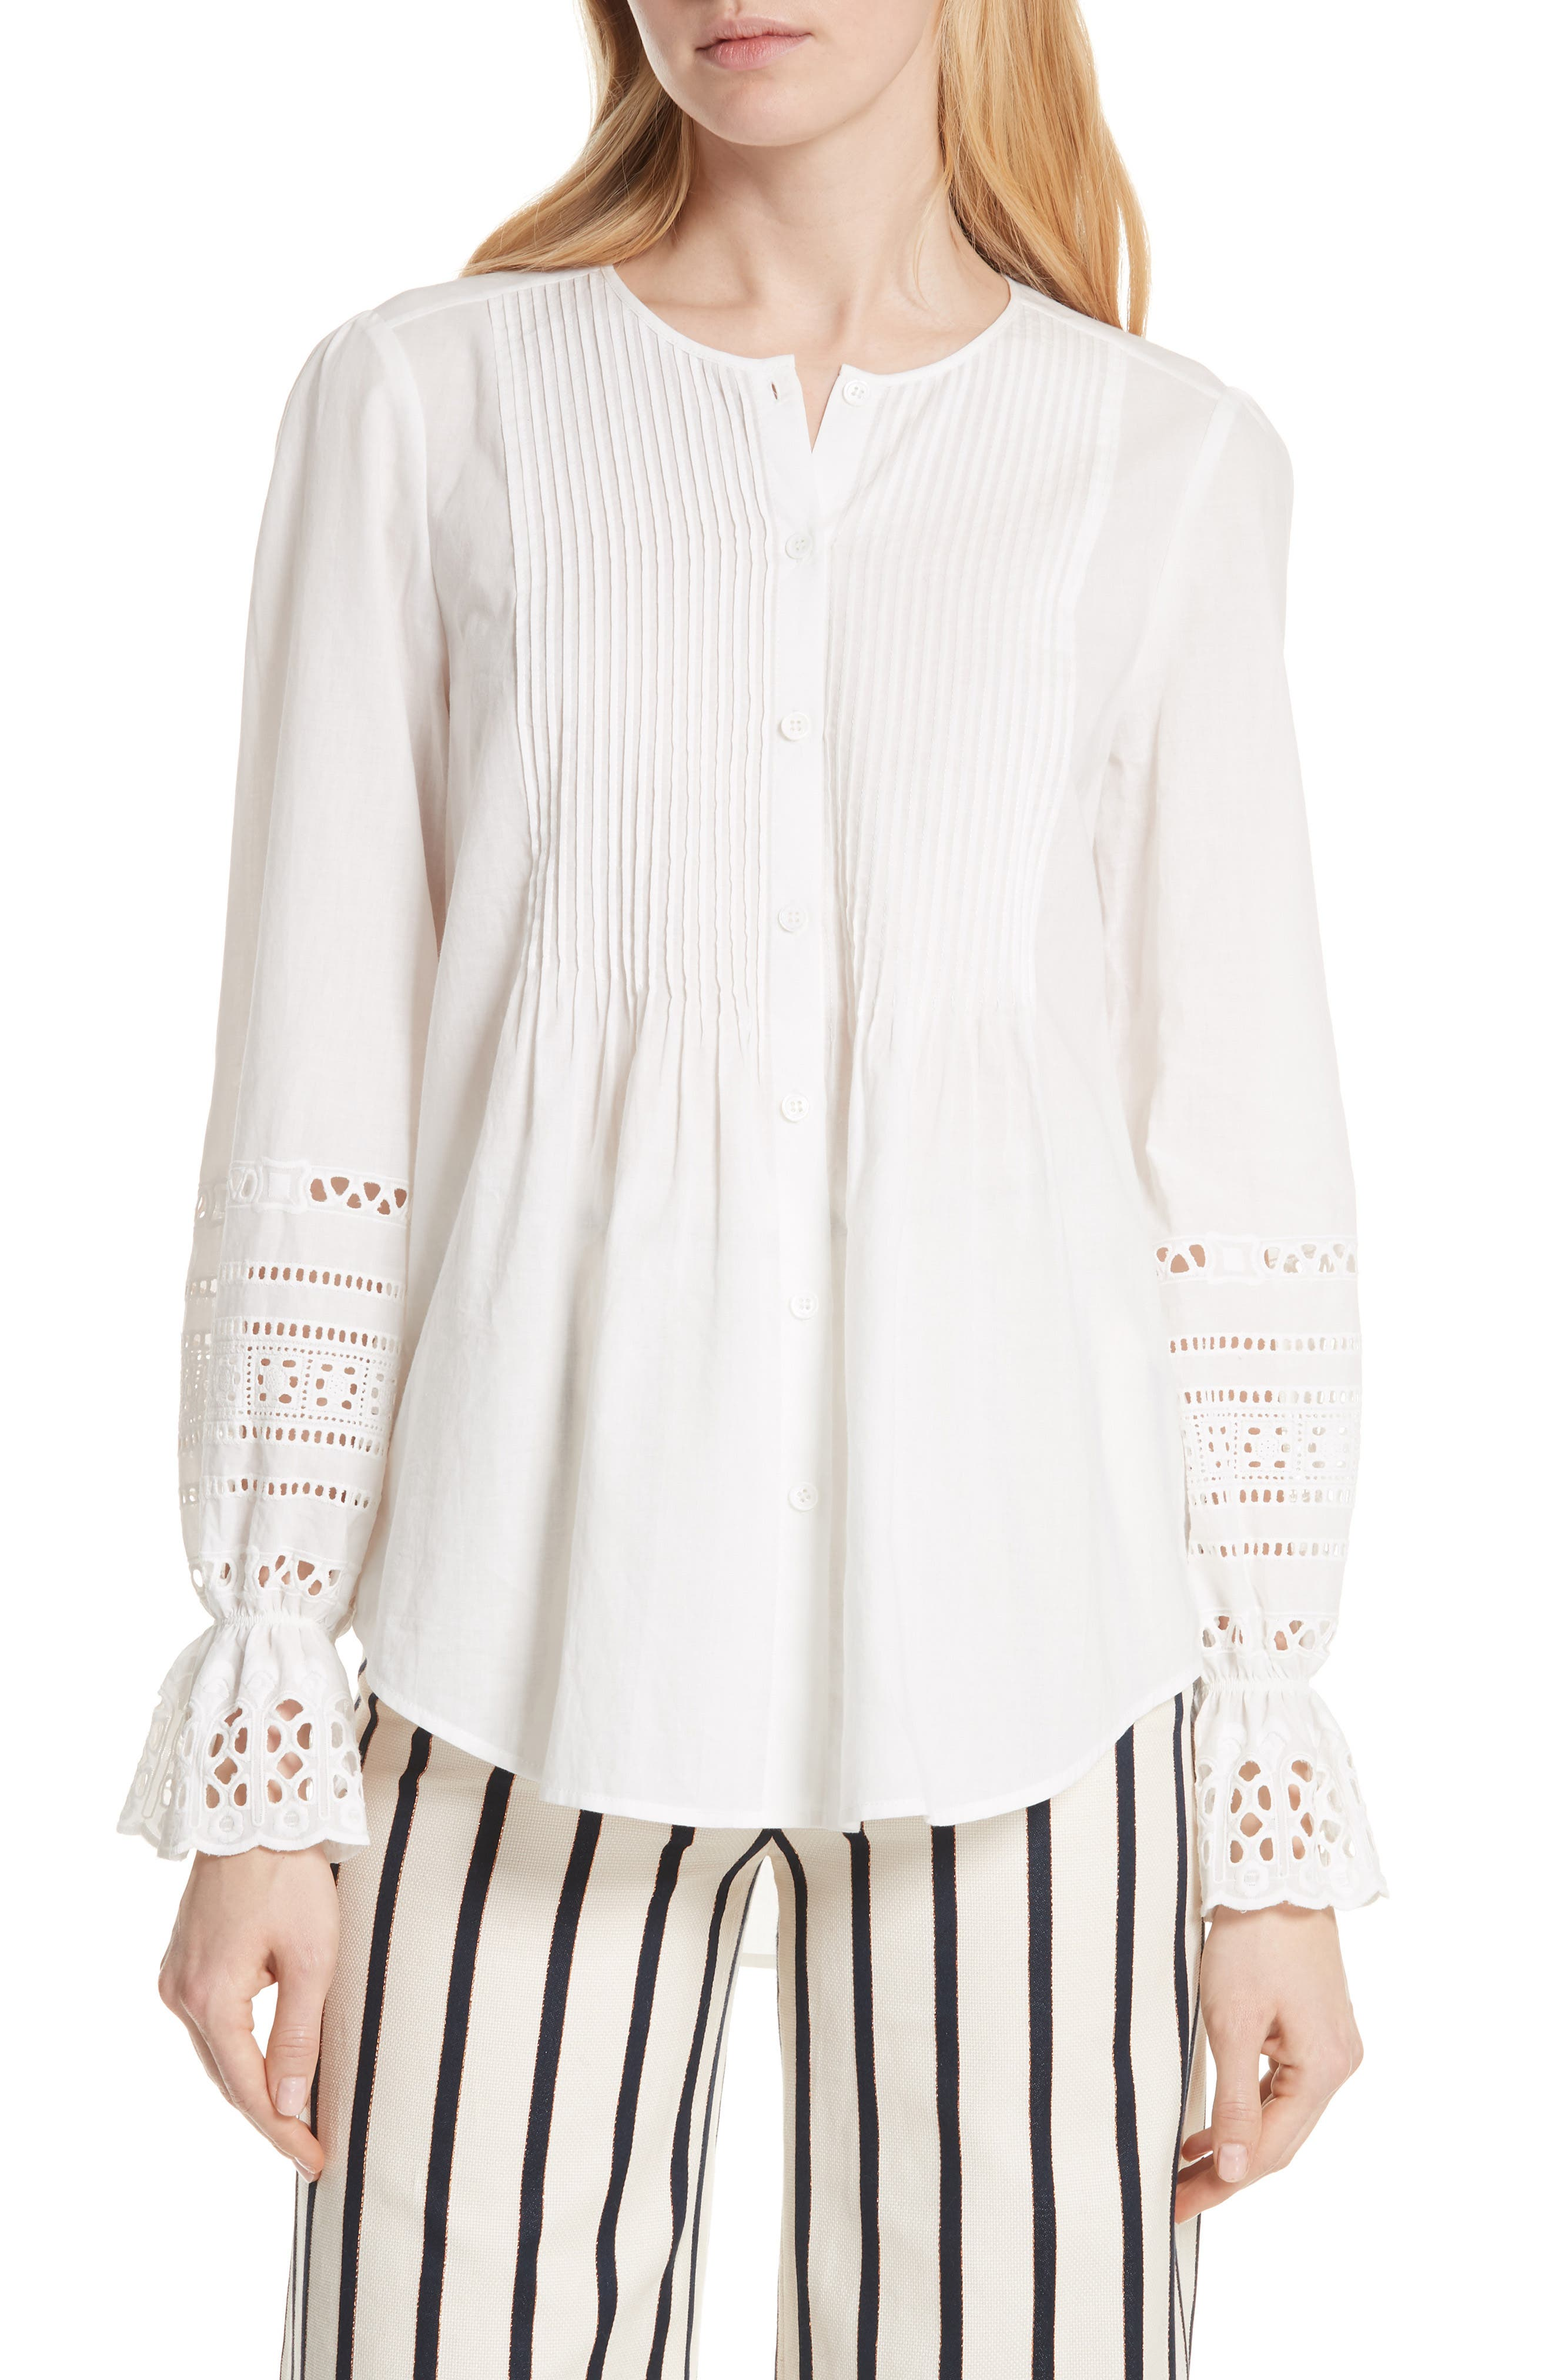 Mili Eyelet Sleeve Top,                         Main,                         color, White